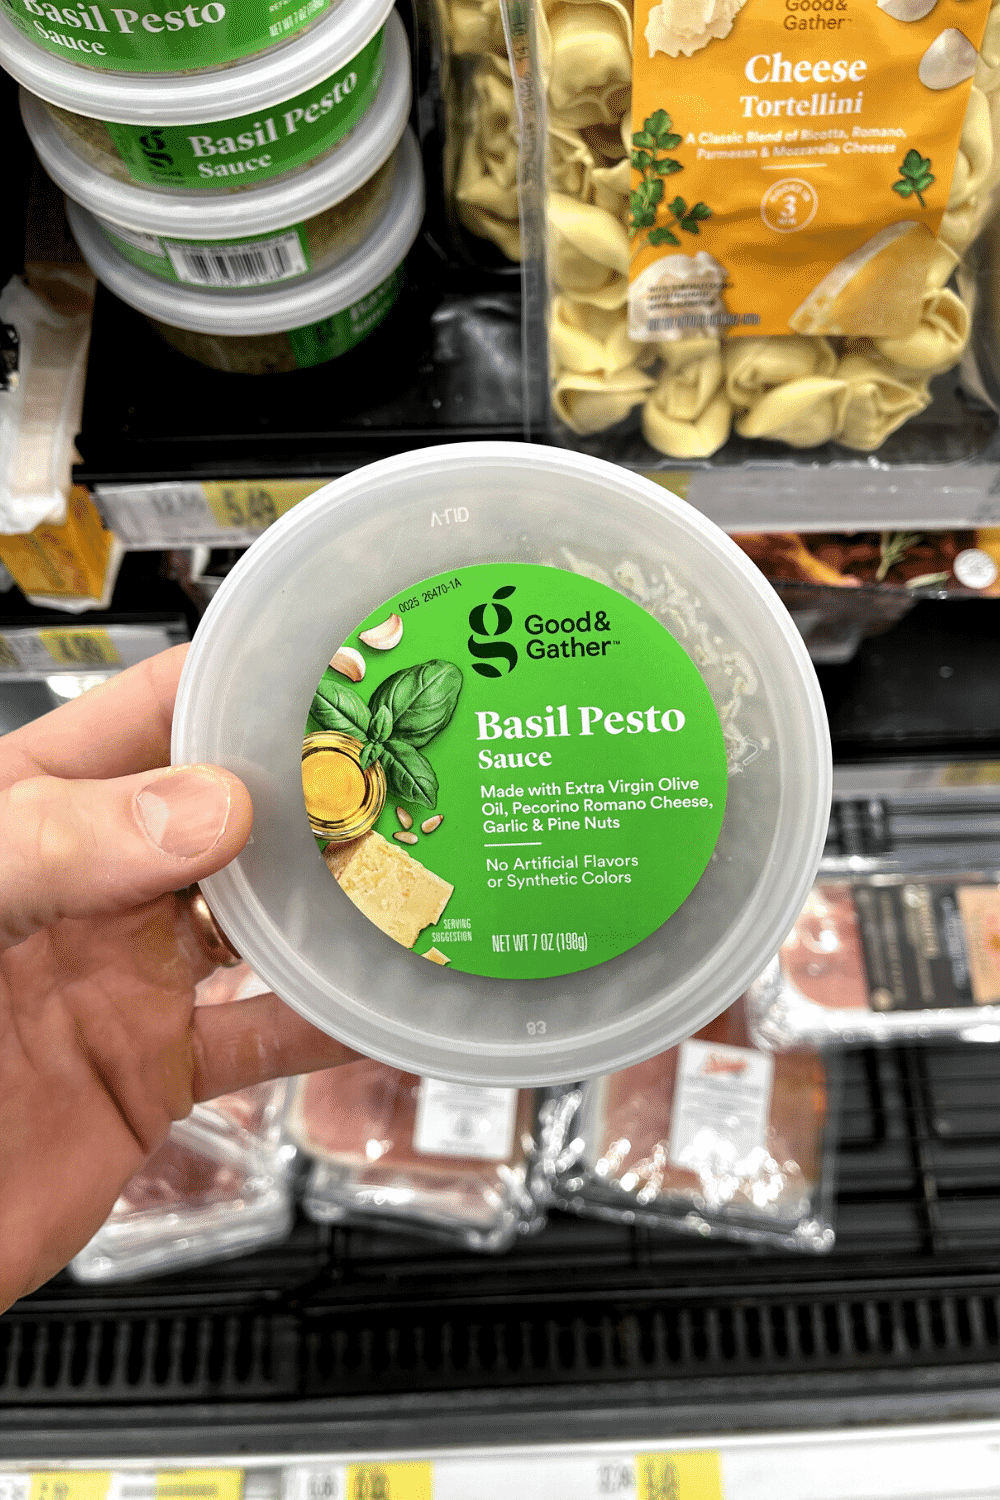 A hand holding a container of basil pesto sauce.